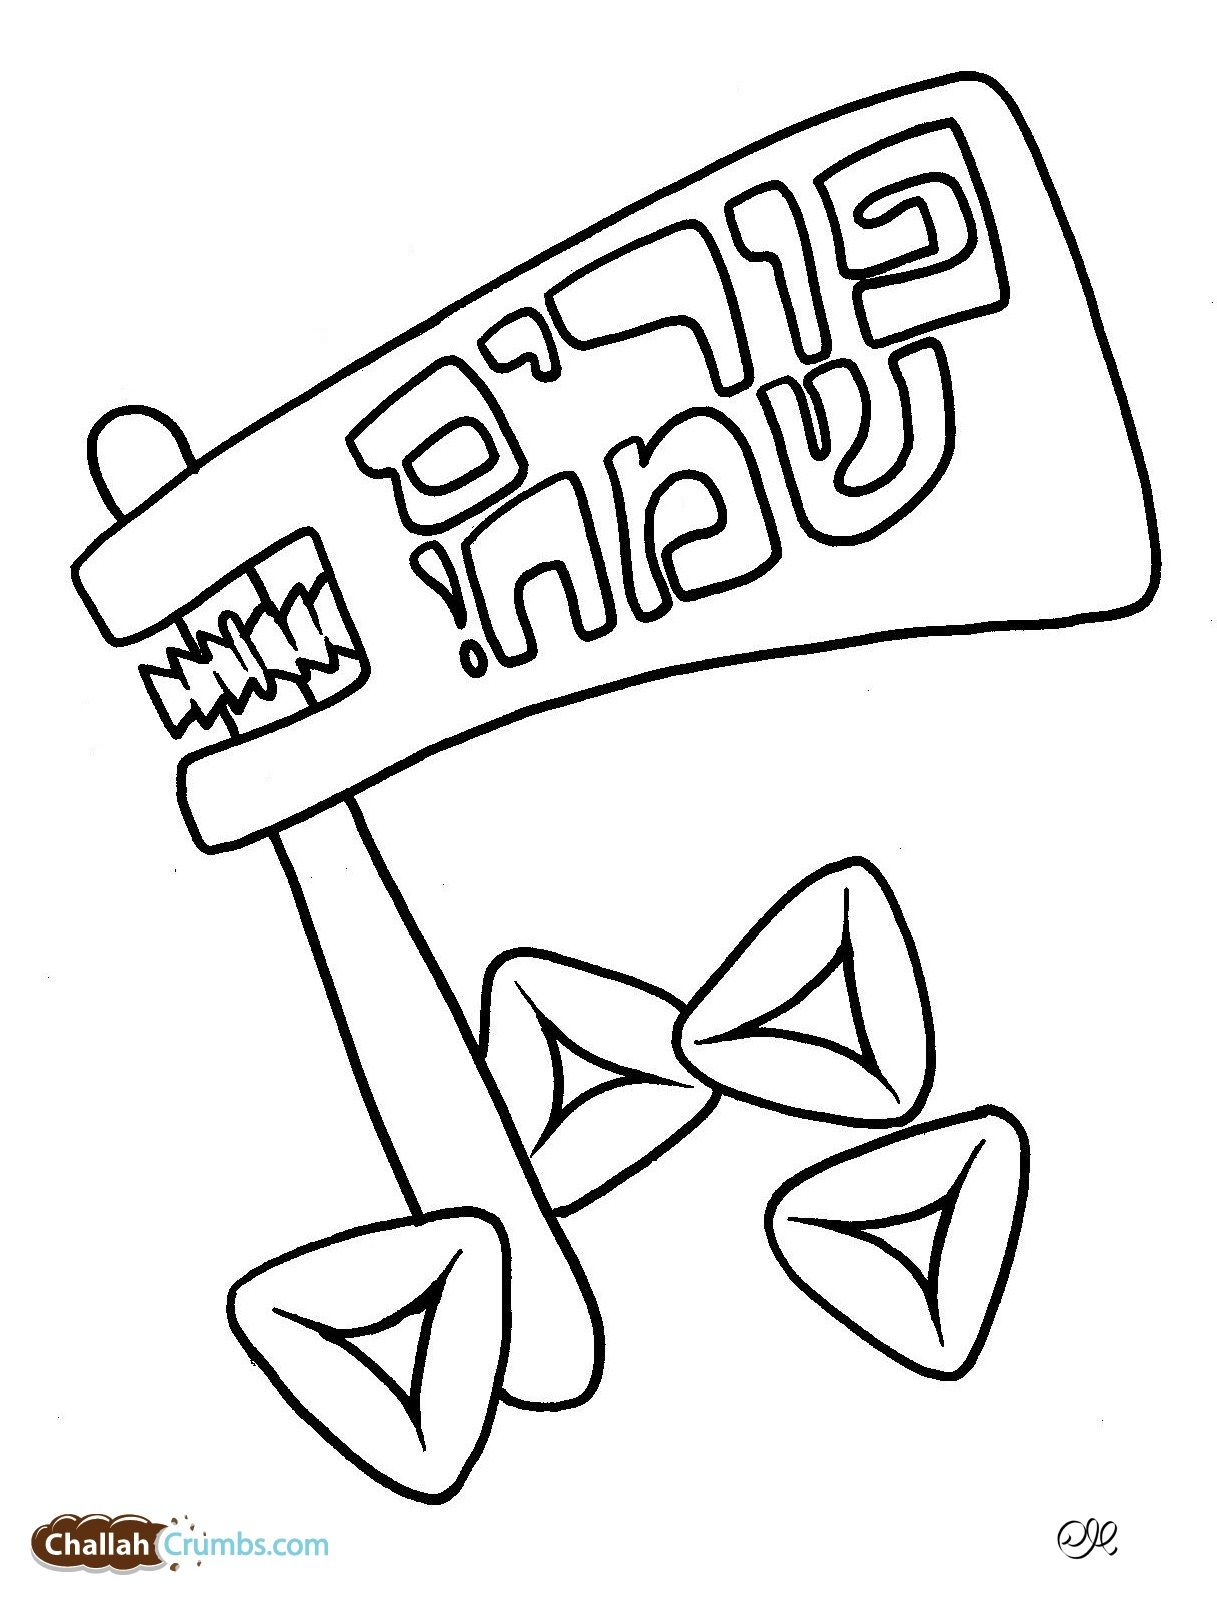 Coloring Grogger Happy Purim Purim Crafts Preschool